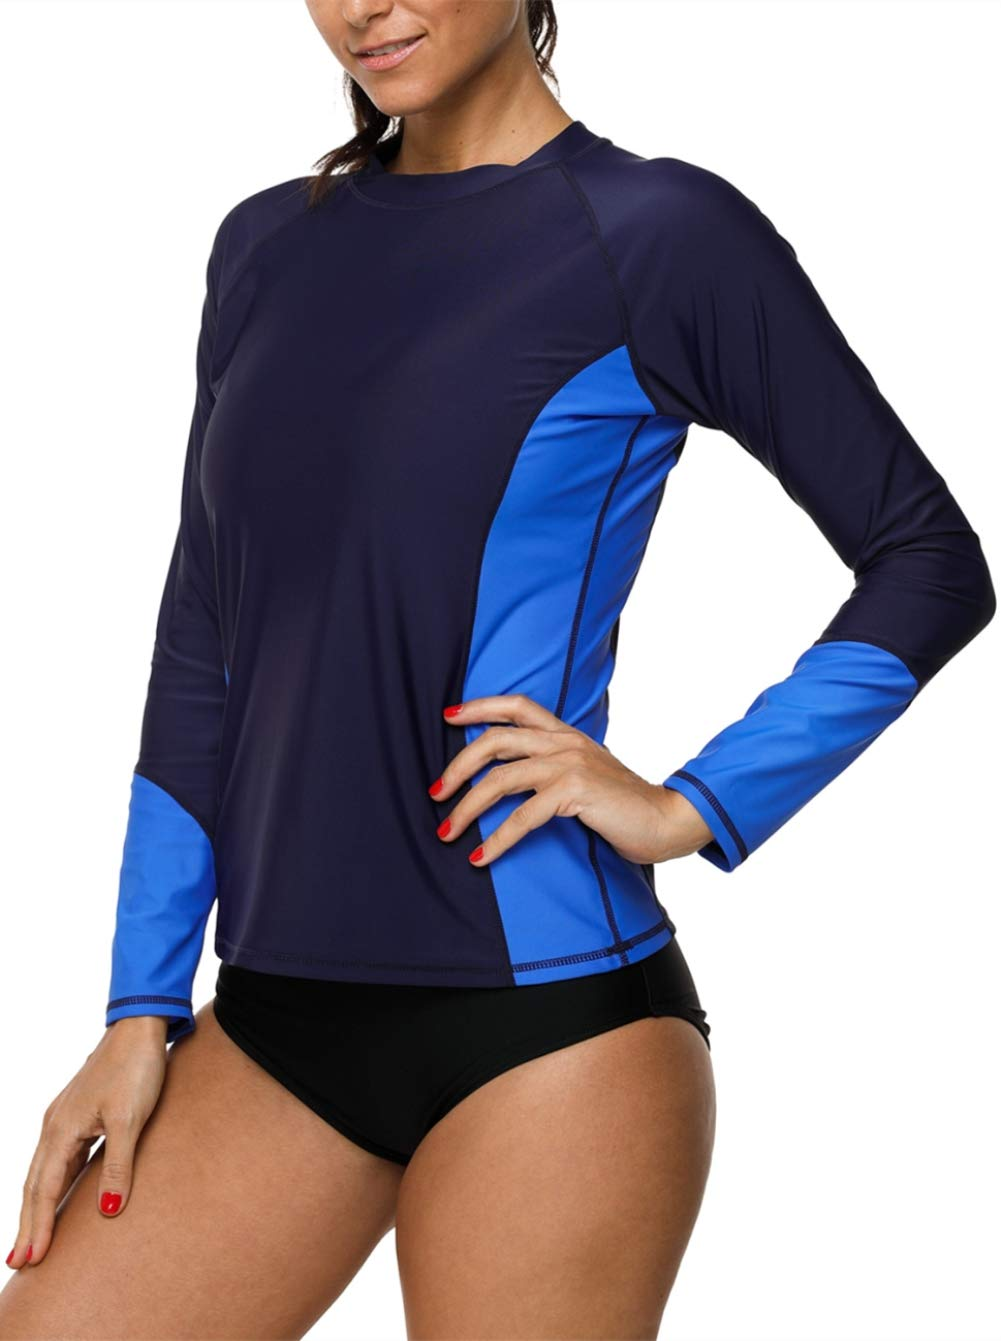 bluee beautyin Women's LongSleeve Rashguard UPF 50+ Swimwear Rash Guard Athletic Tops